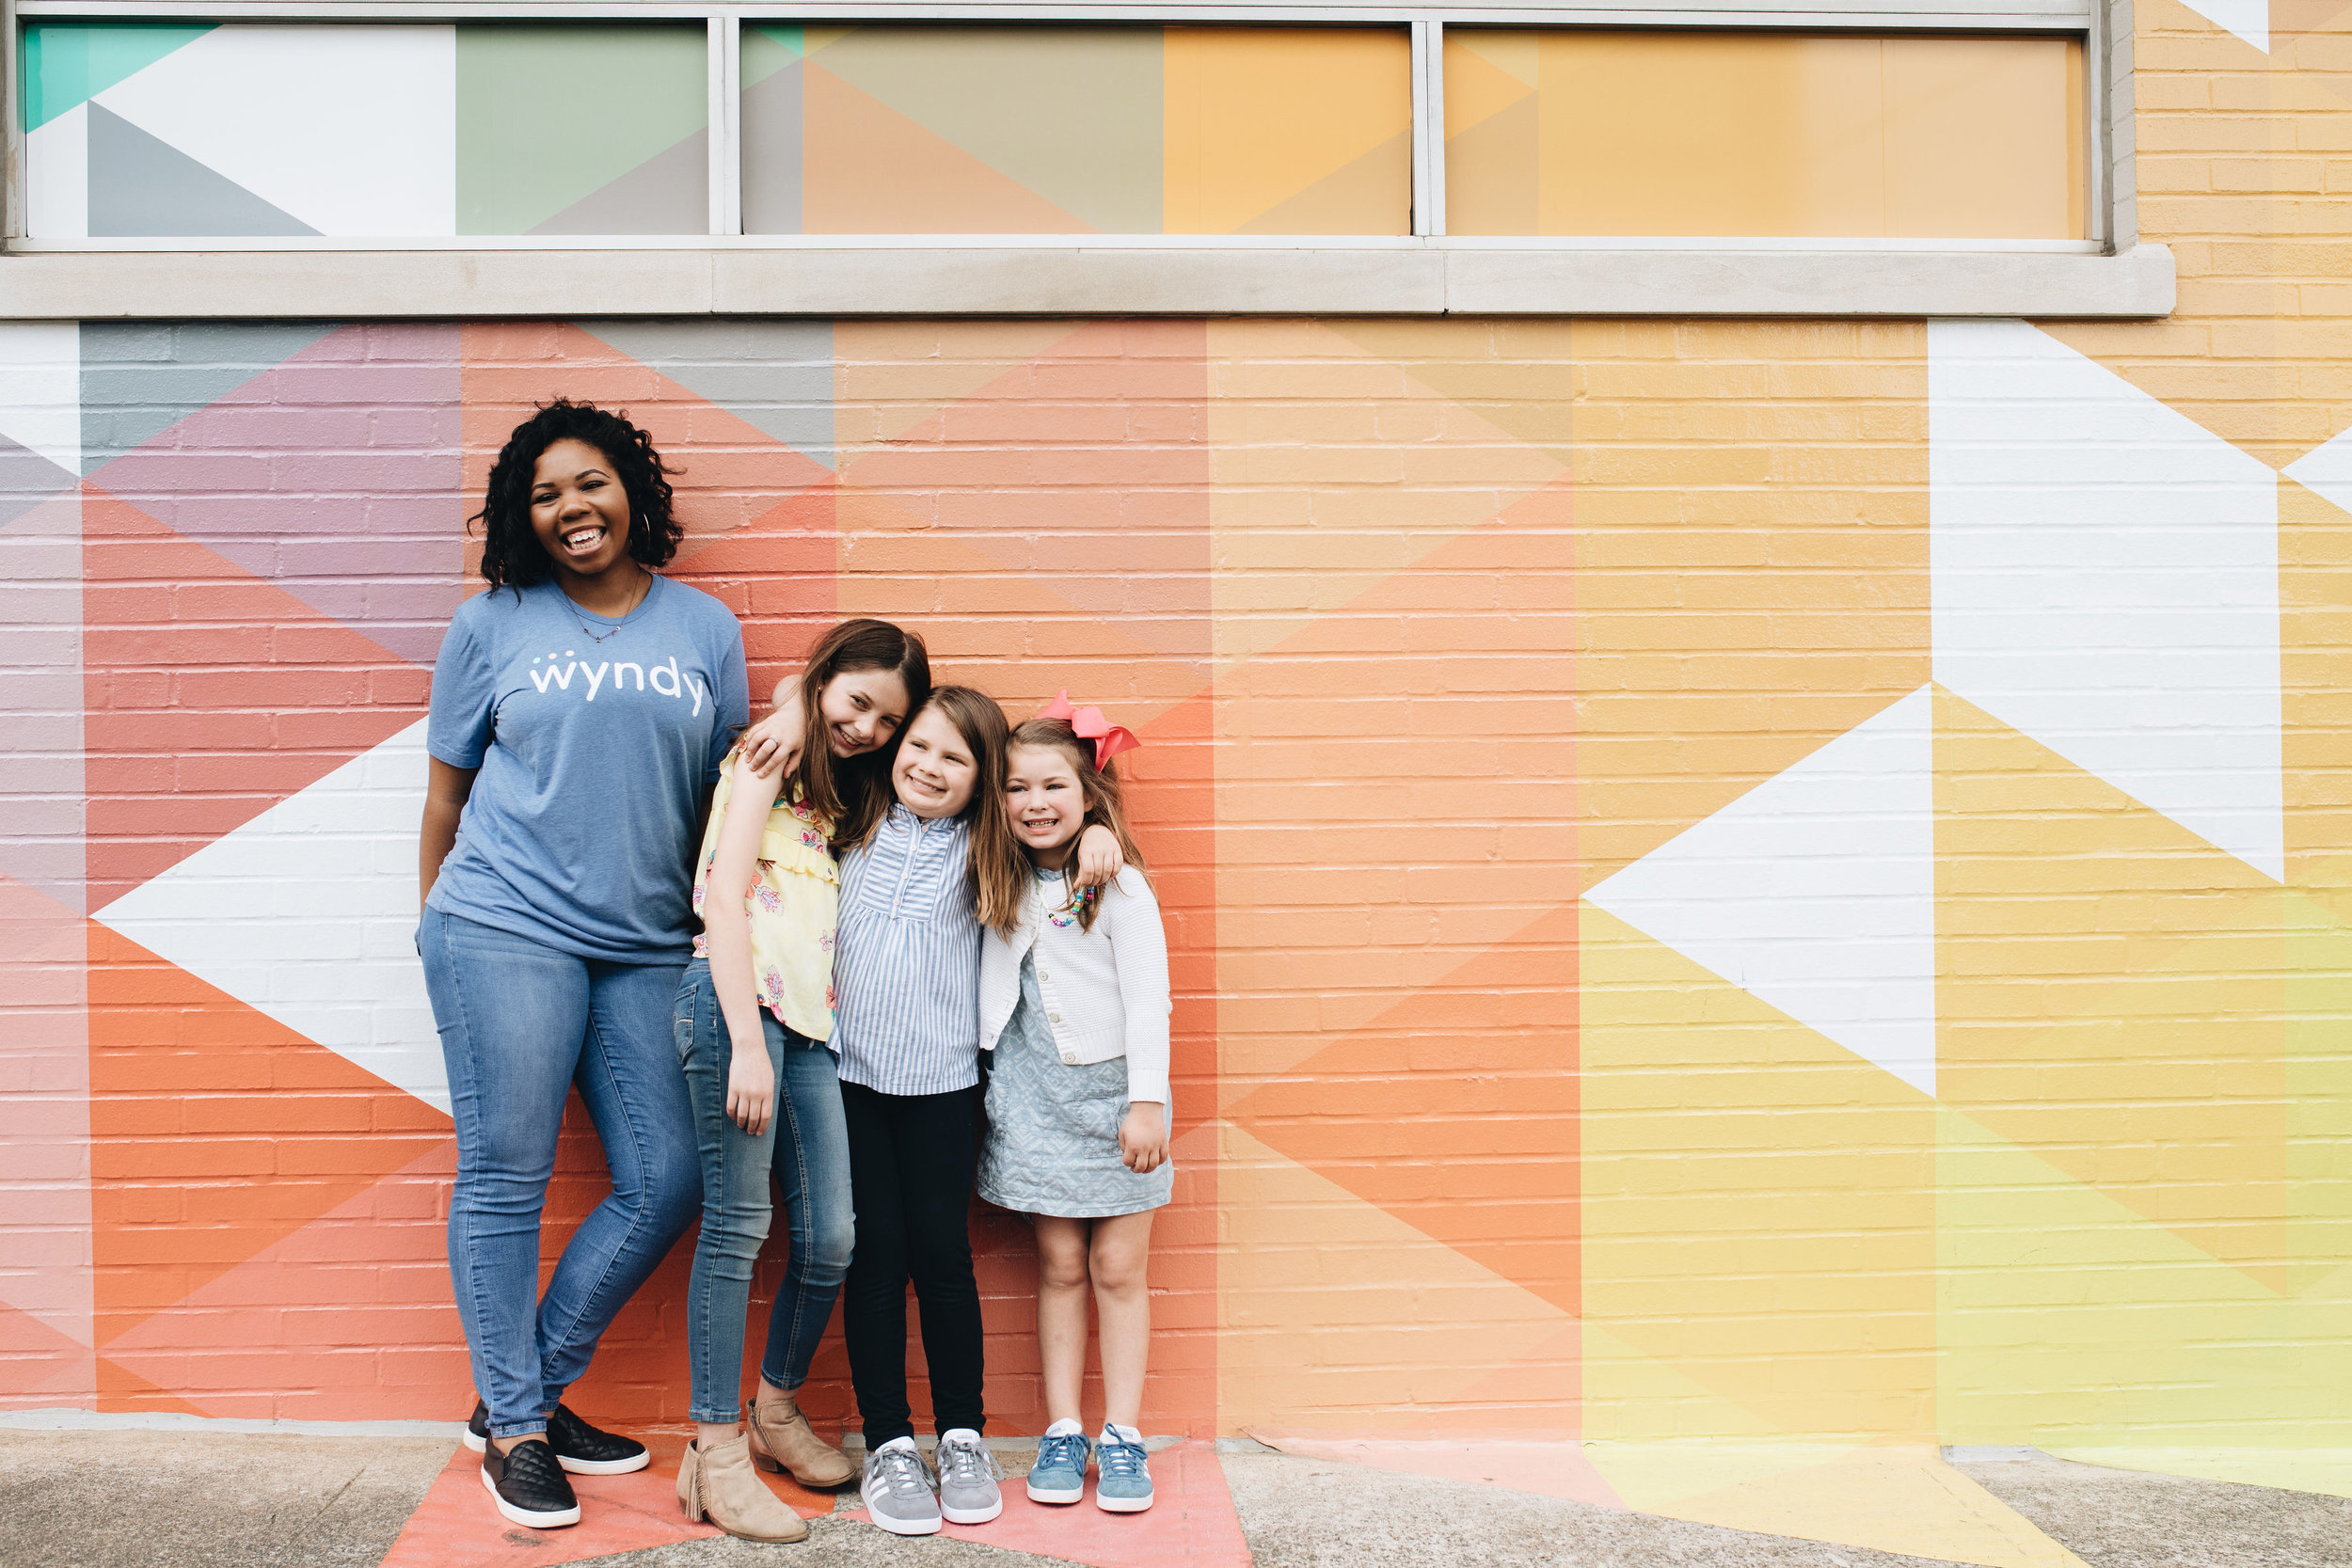 Get $15 off your first Wyndy babysitting job in Nashville - More than 10,000 families in Atlanta, Nashville, Birmingham, and Memphis trust Wyndy.